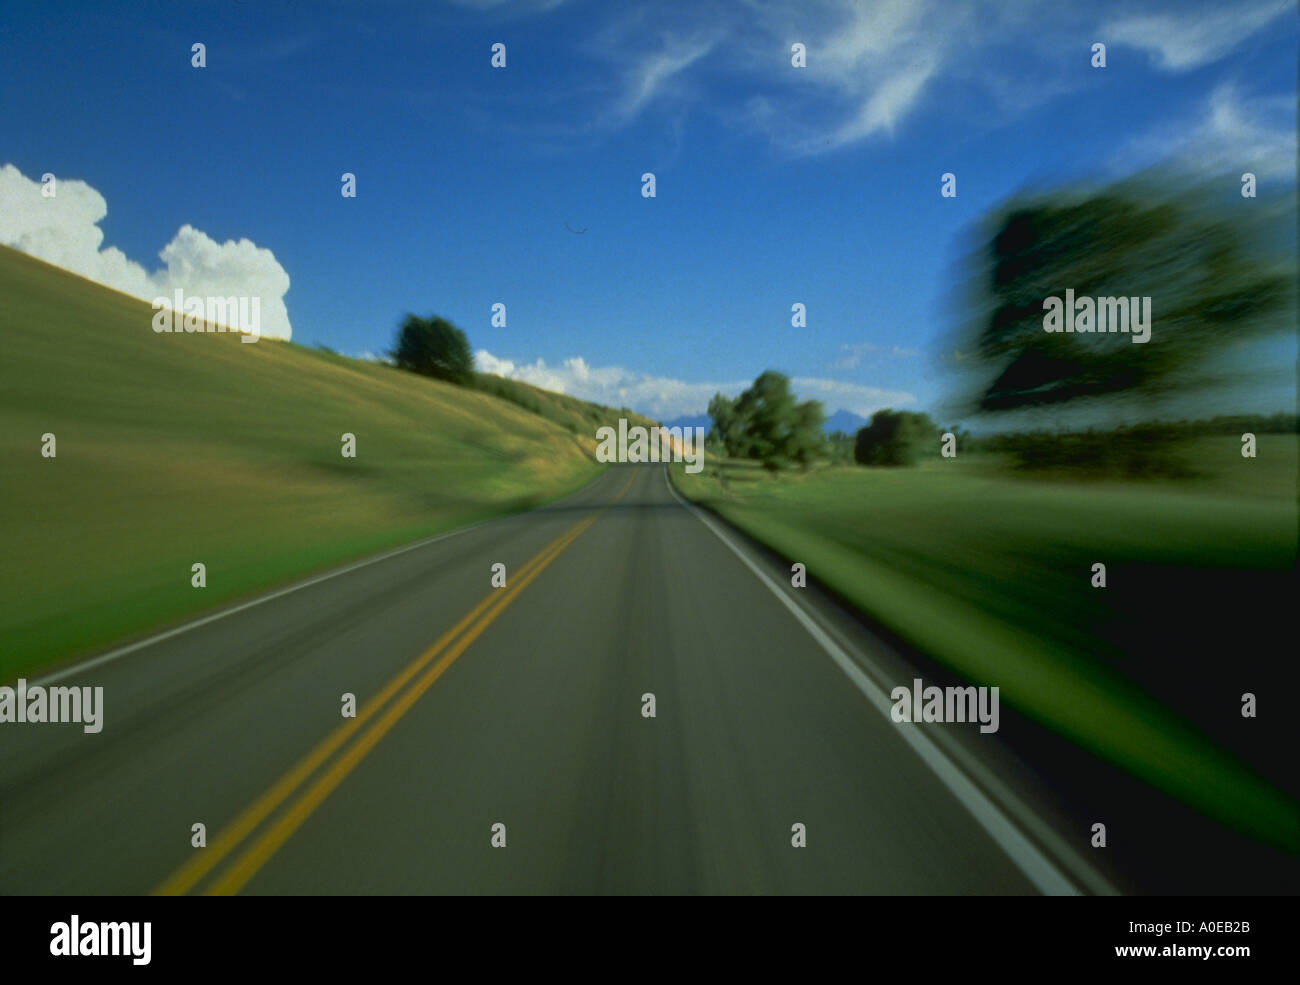 Road with blurred motion effect and blue sky and clouds Paradise Valley near Livingston Montana - Stock Image